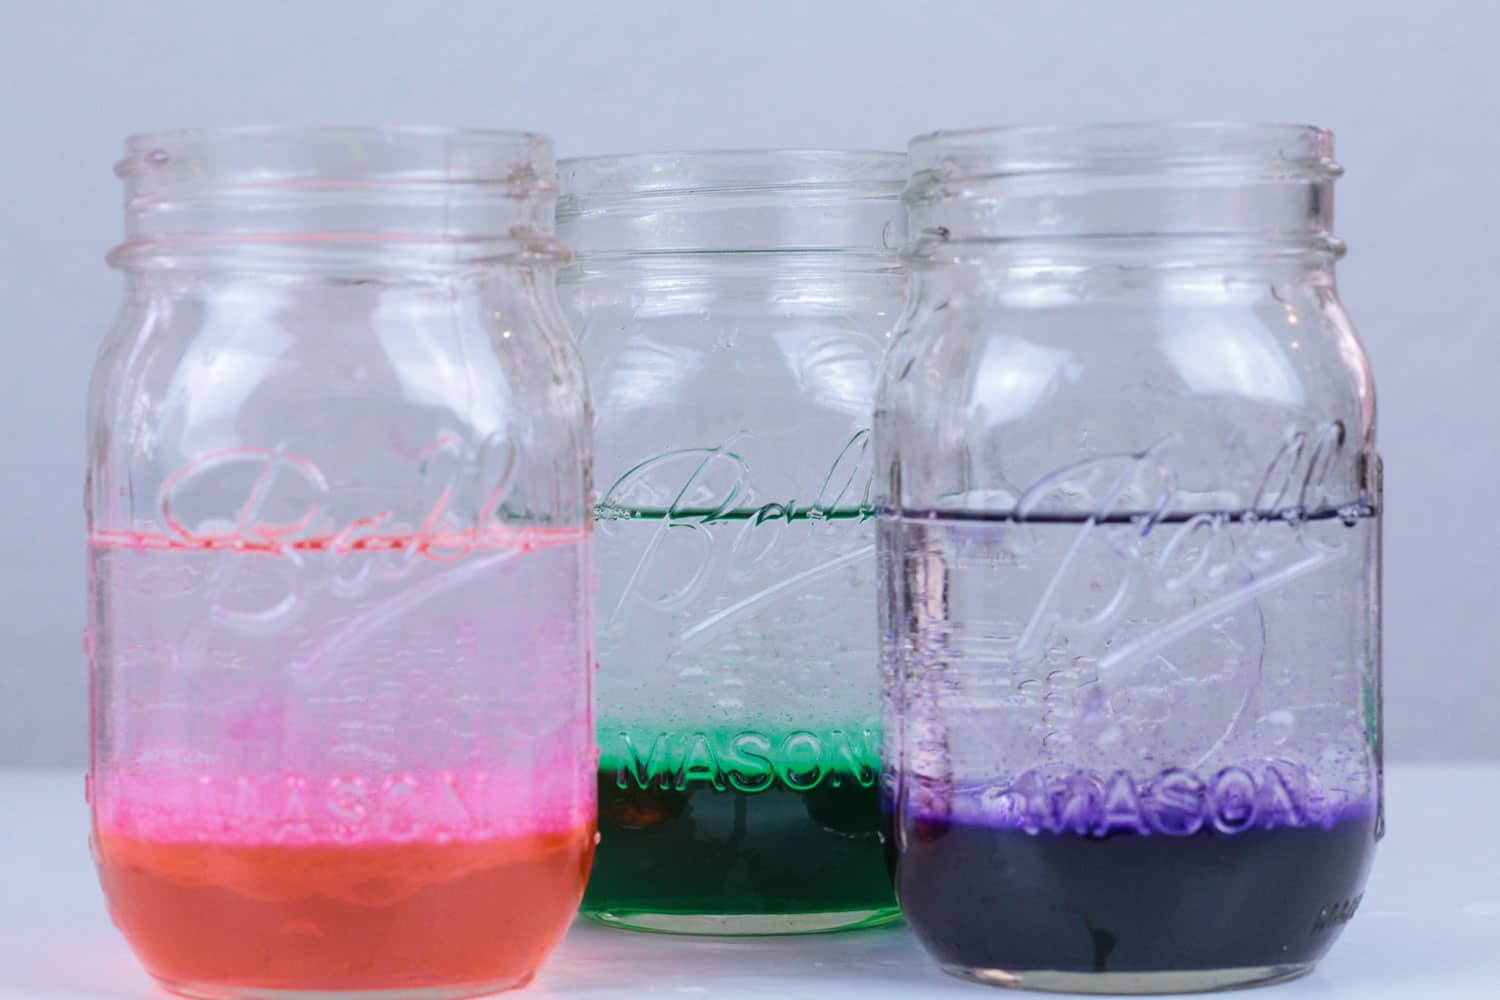 Love Easter? Love science? You won't want to miss this fun Easter lava lamp science experiment for kids! Kids will love the bright spring colors and it's a fun way to explore chemical reaction science with young kids using lava lamp technology!